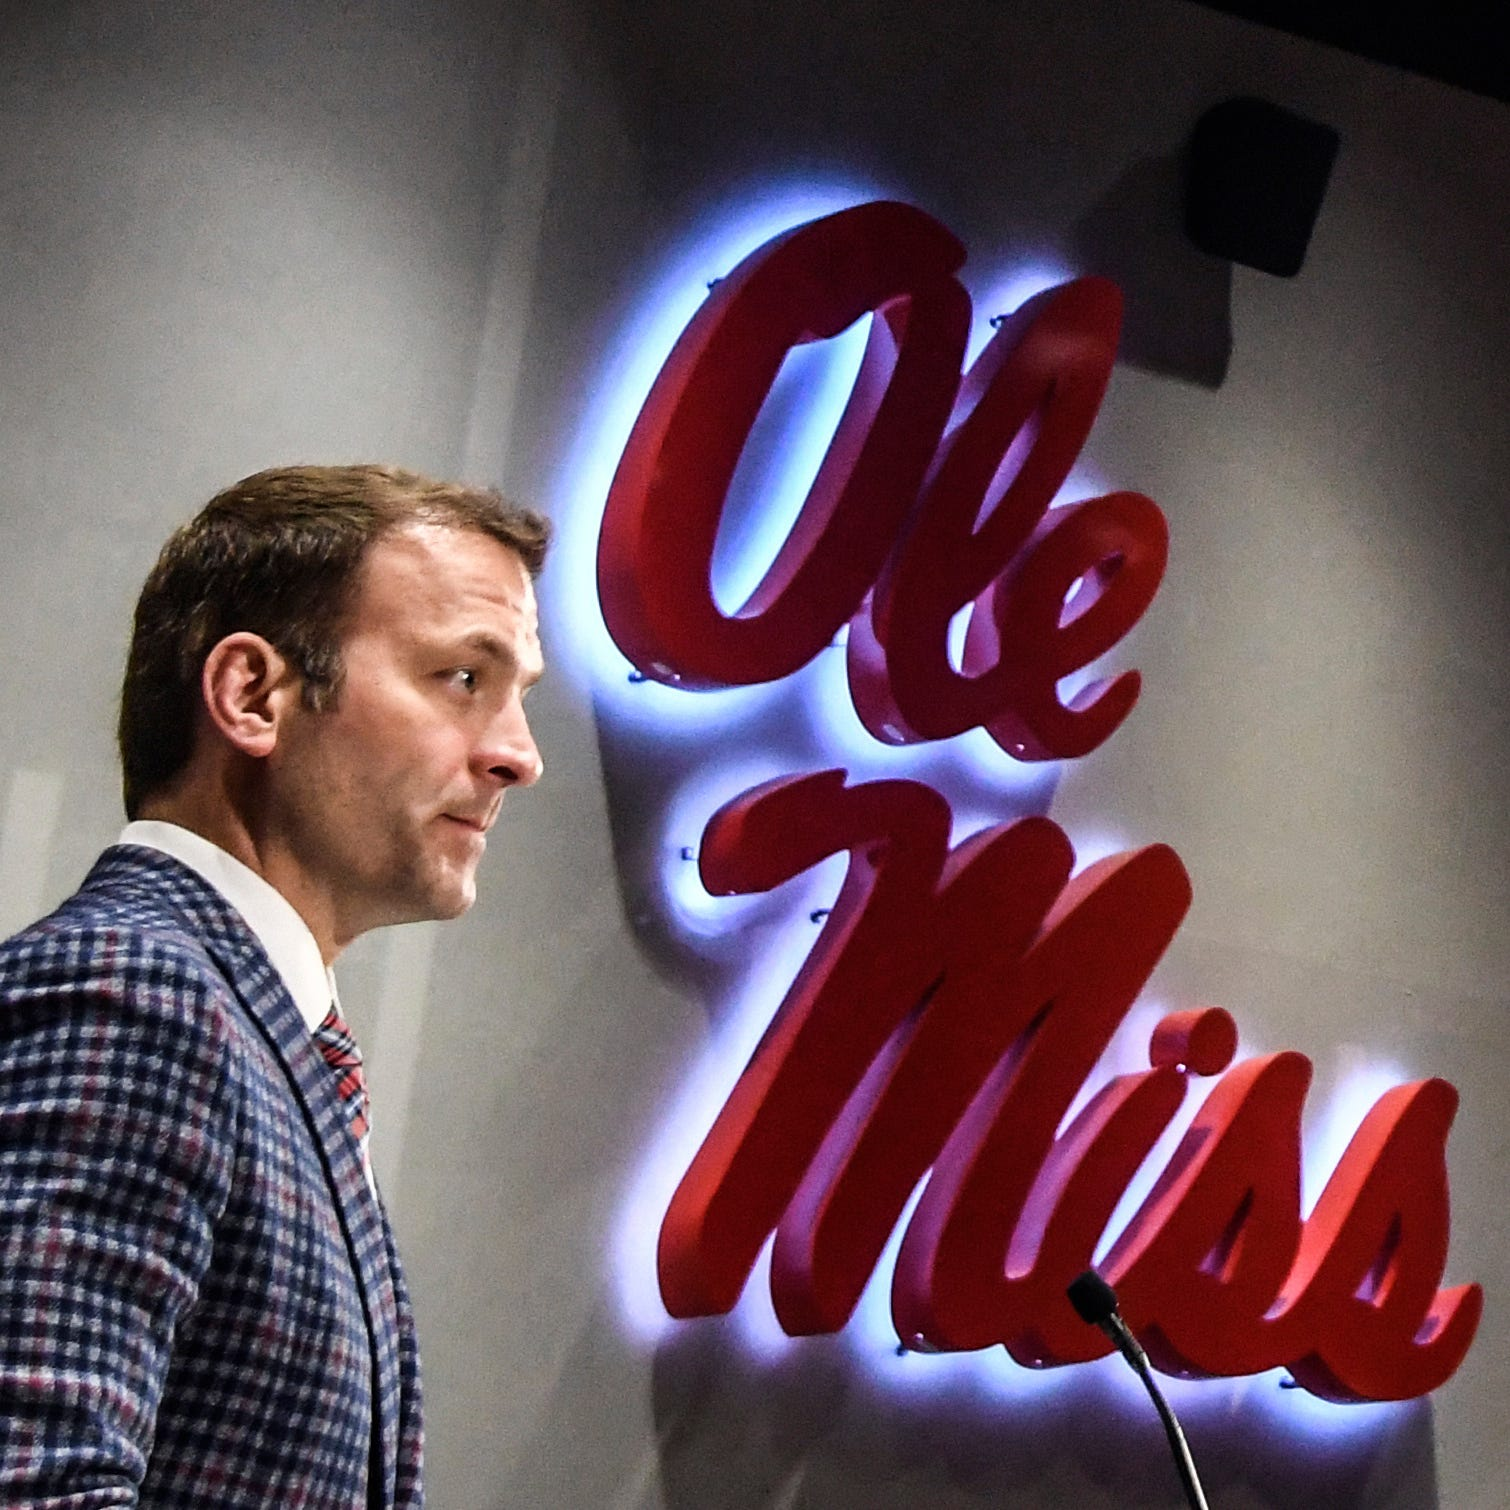 Ross Bjork leaving Ole Miss to become Texas A&M athletic director, Ole Miss confirms